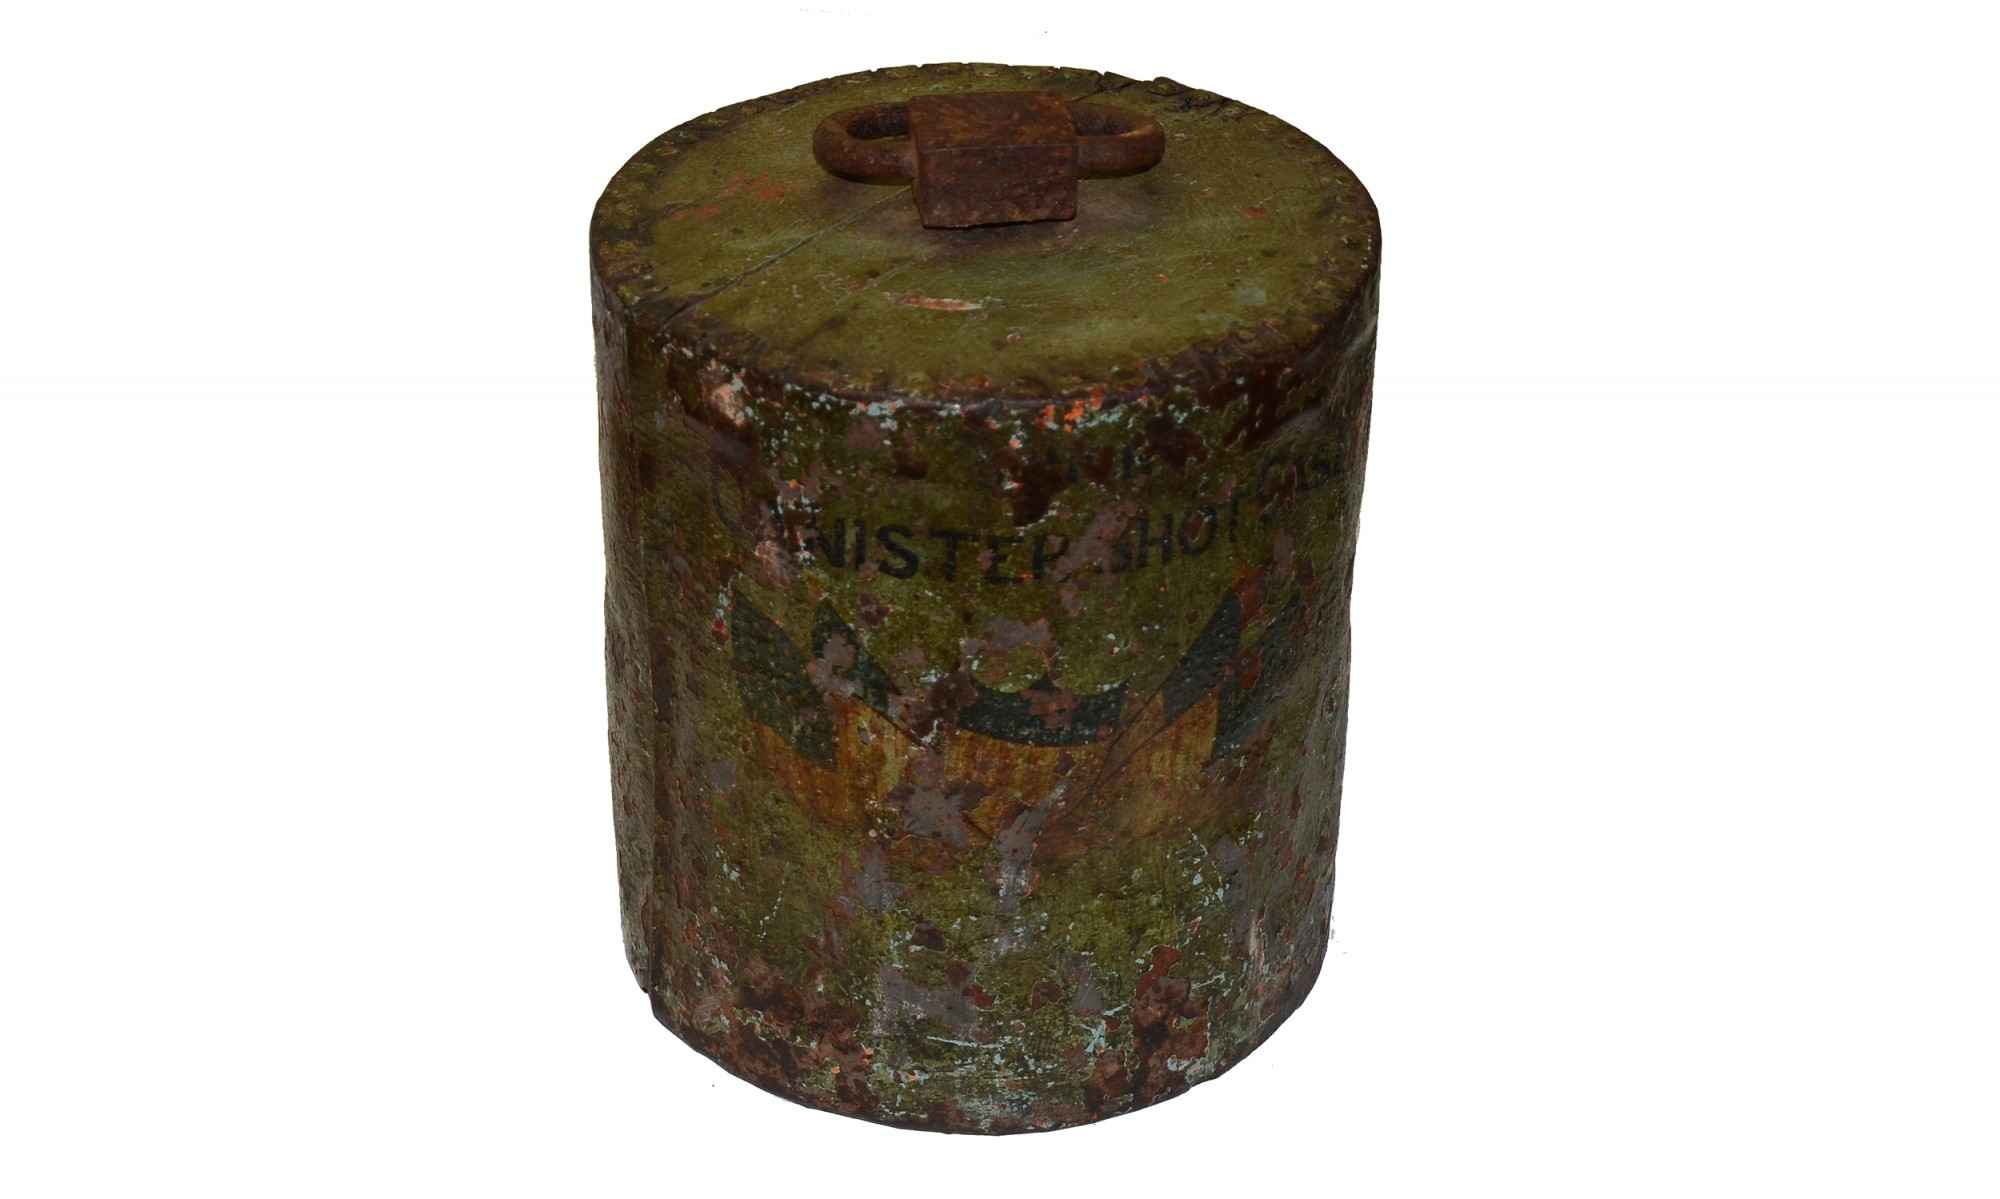 US 9-INCH DAHLGREN CANISTER ROUND WITH FOLK ART PAINTING